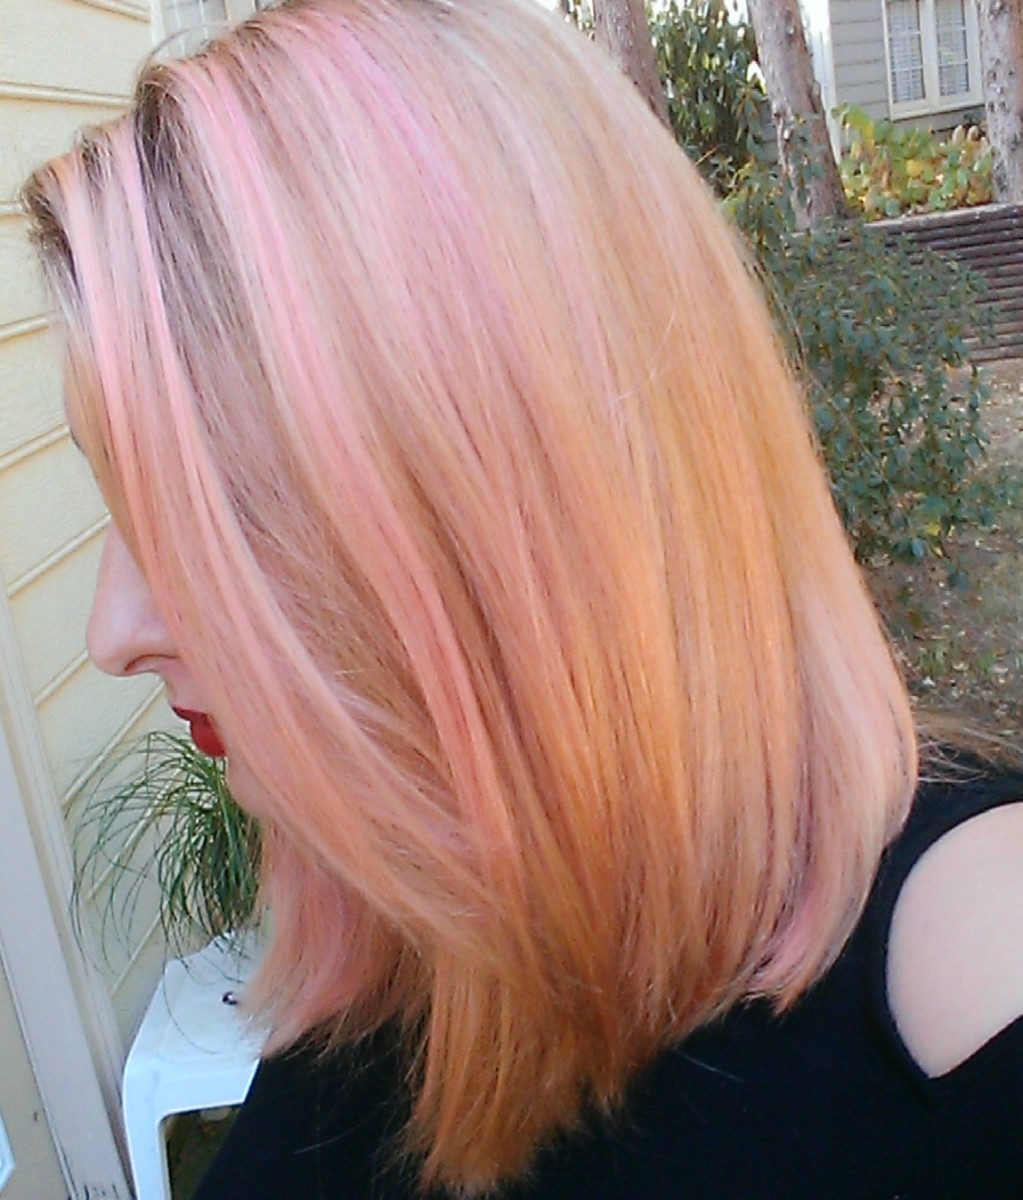 A side view in natural light of my rose gold tint!